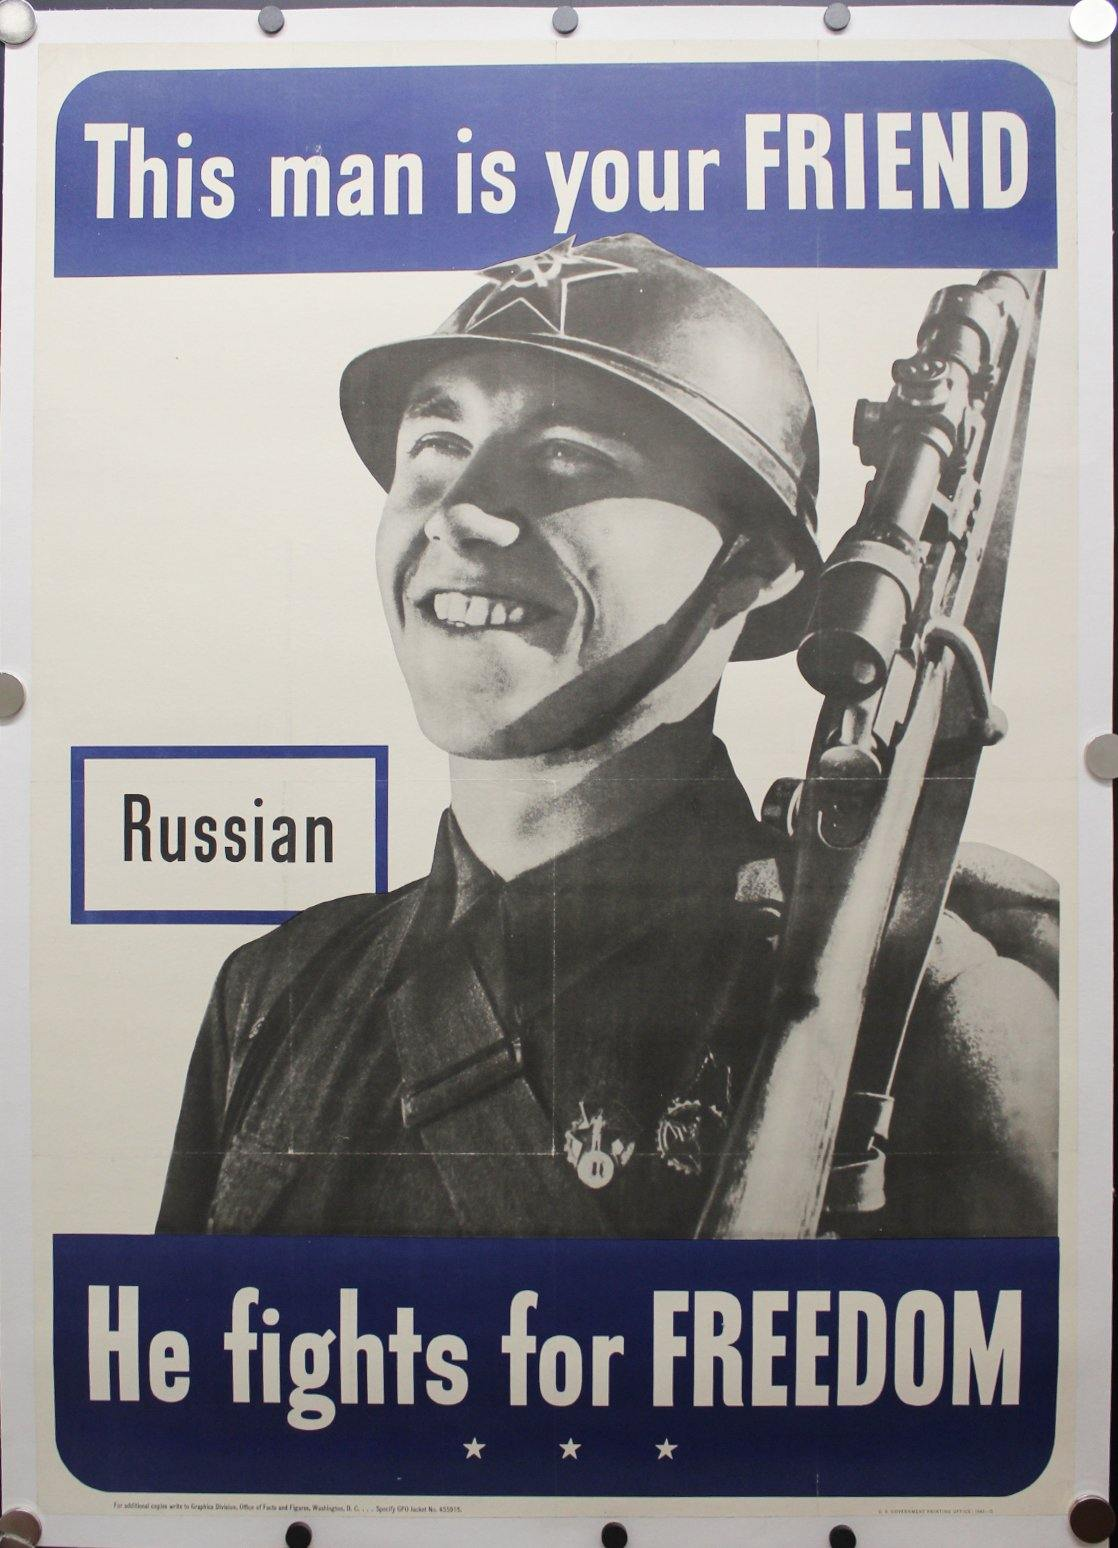 1942 This Man Is Your Friend He Fights For Your Freedom - Russian